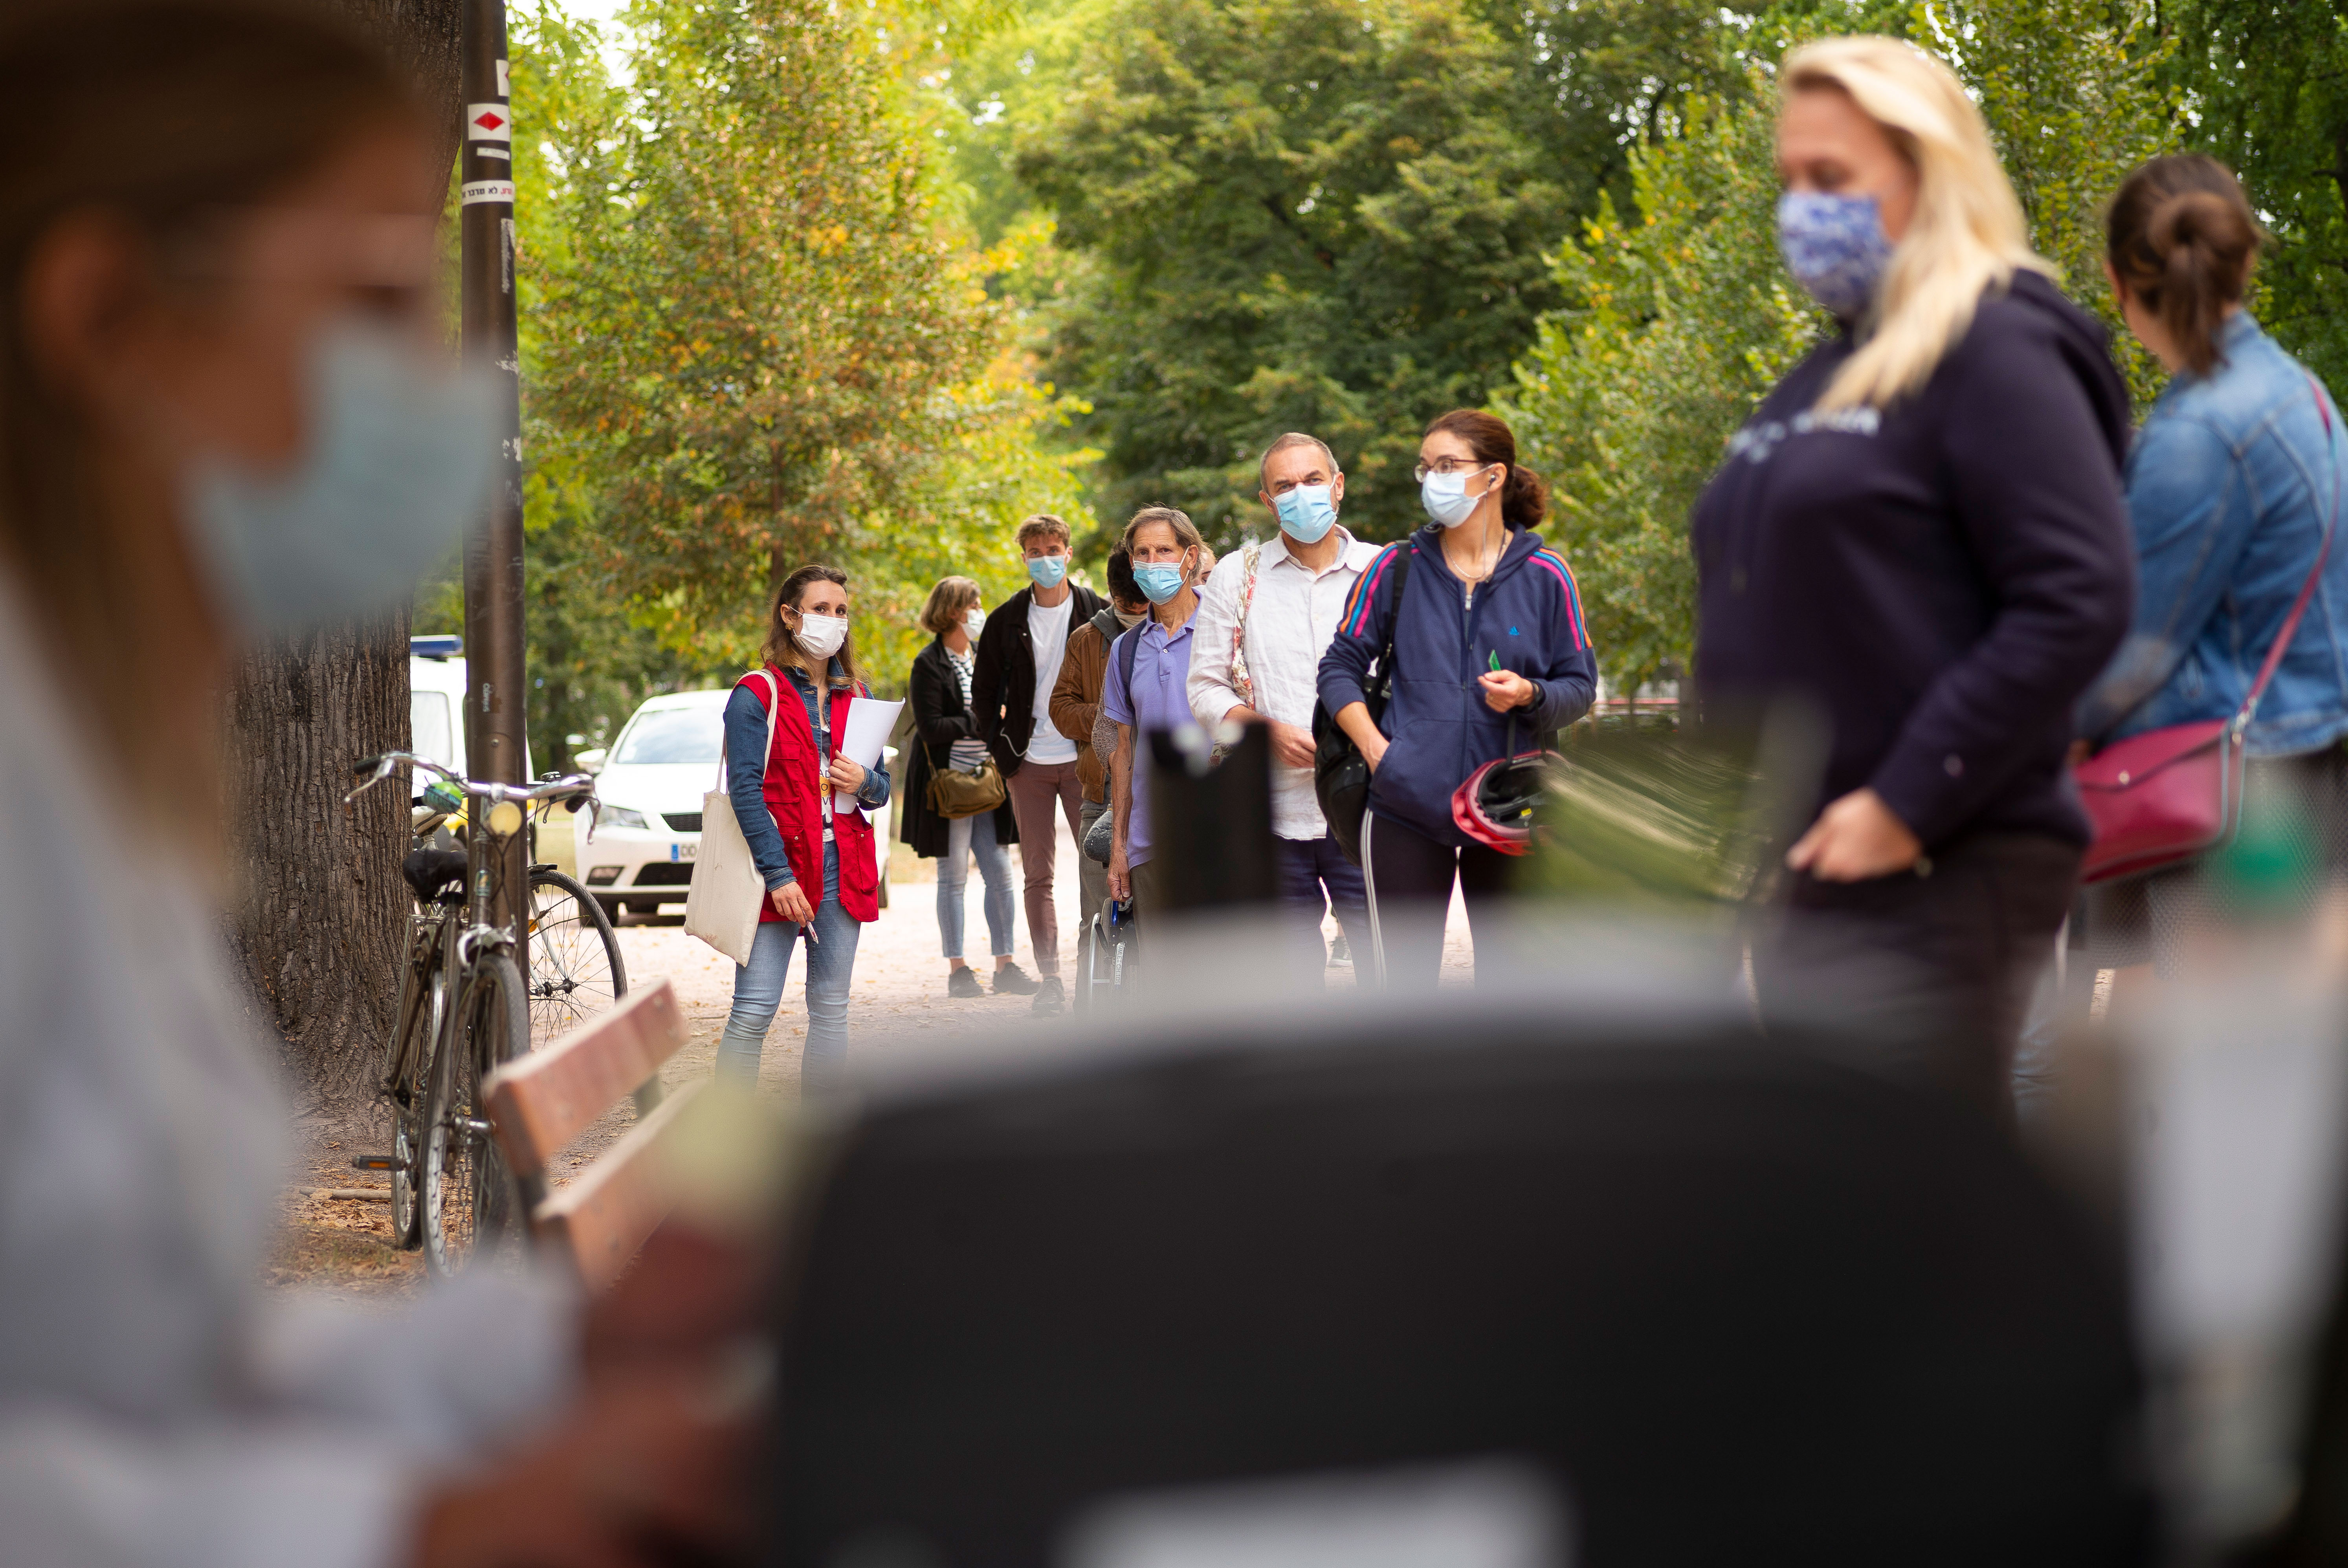 People line up at a mobile Covid-19 testing center in Strasbourg, France, on September 23.